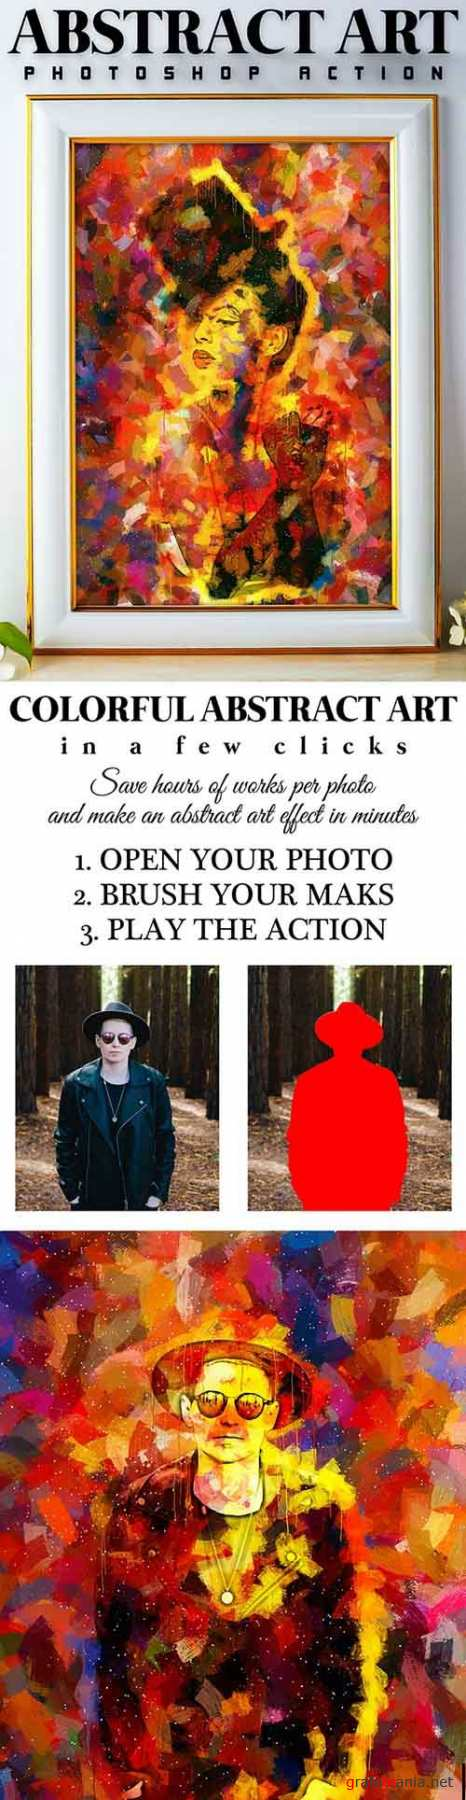 Abstract Art Photoshop Action 26121789